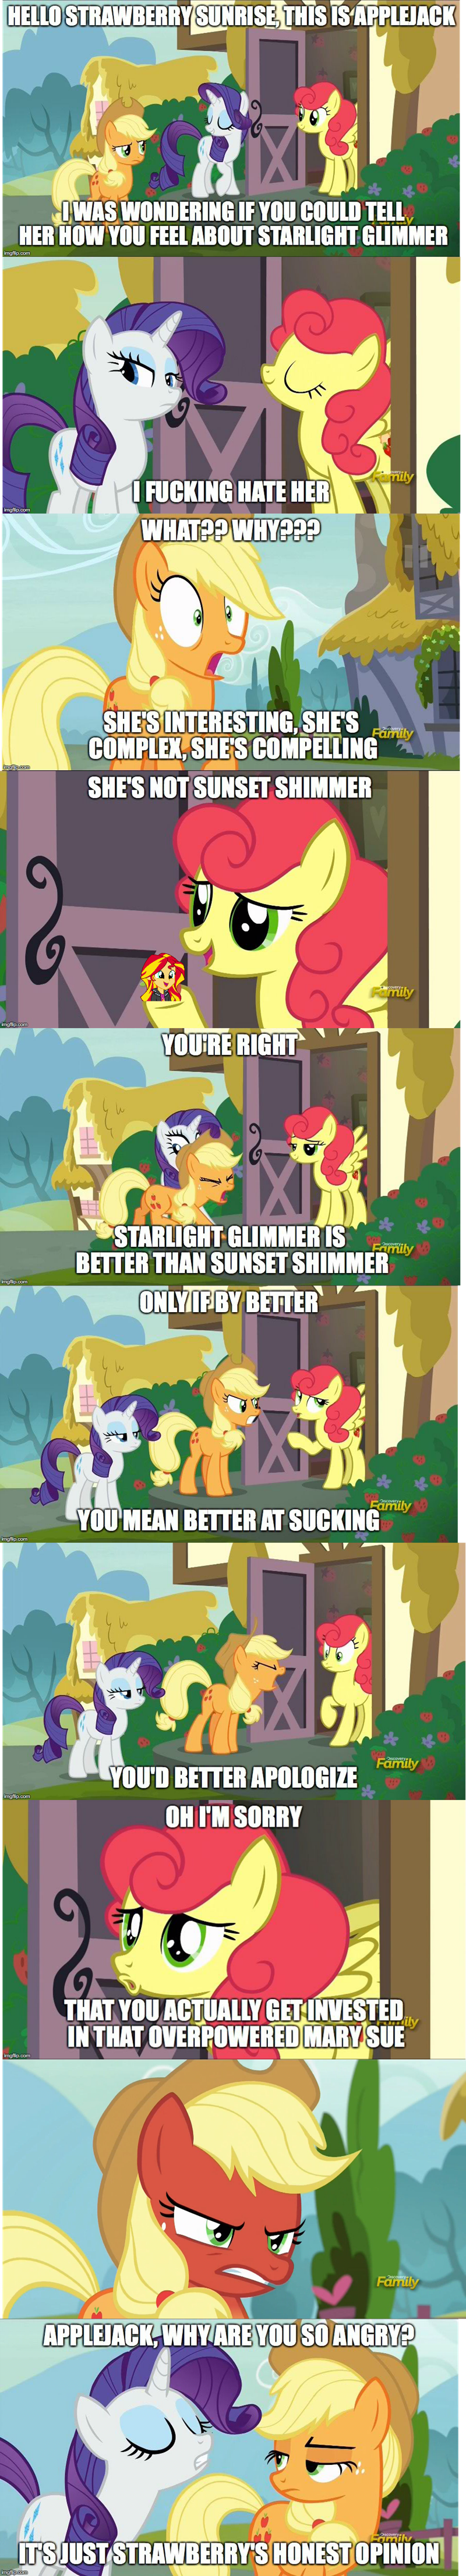 applejack Bronies starlight glimmer screencap honest apple rarity comic sunset shimmer strawberry sunrise - 9041394176